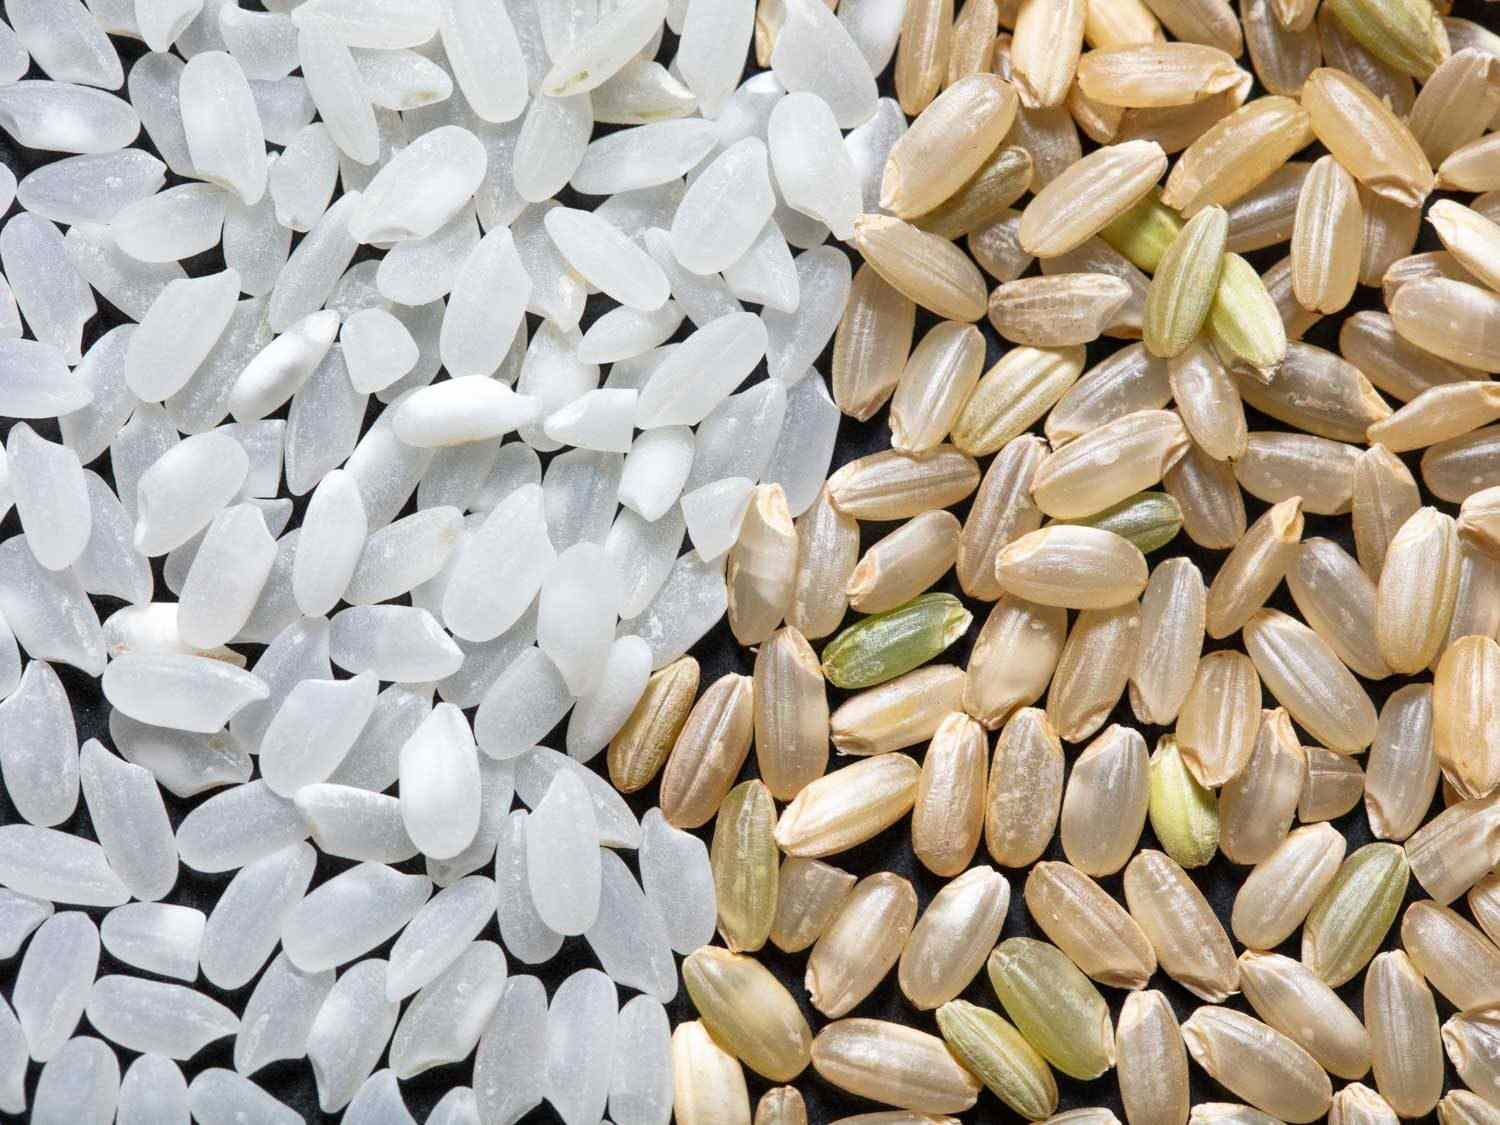 Short- to medium-grained white and brown rice